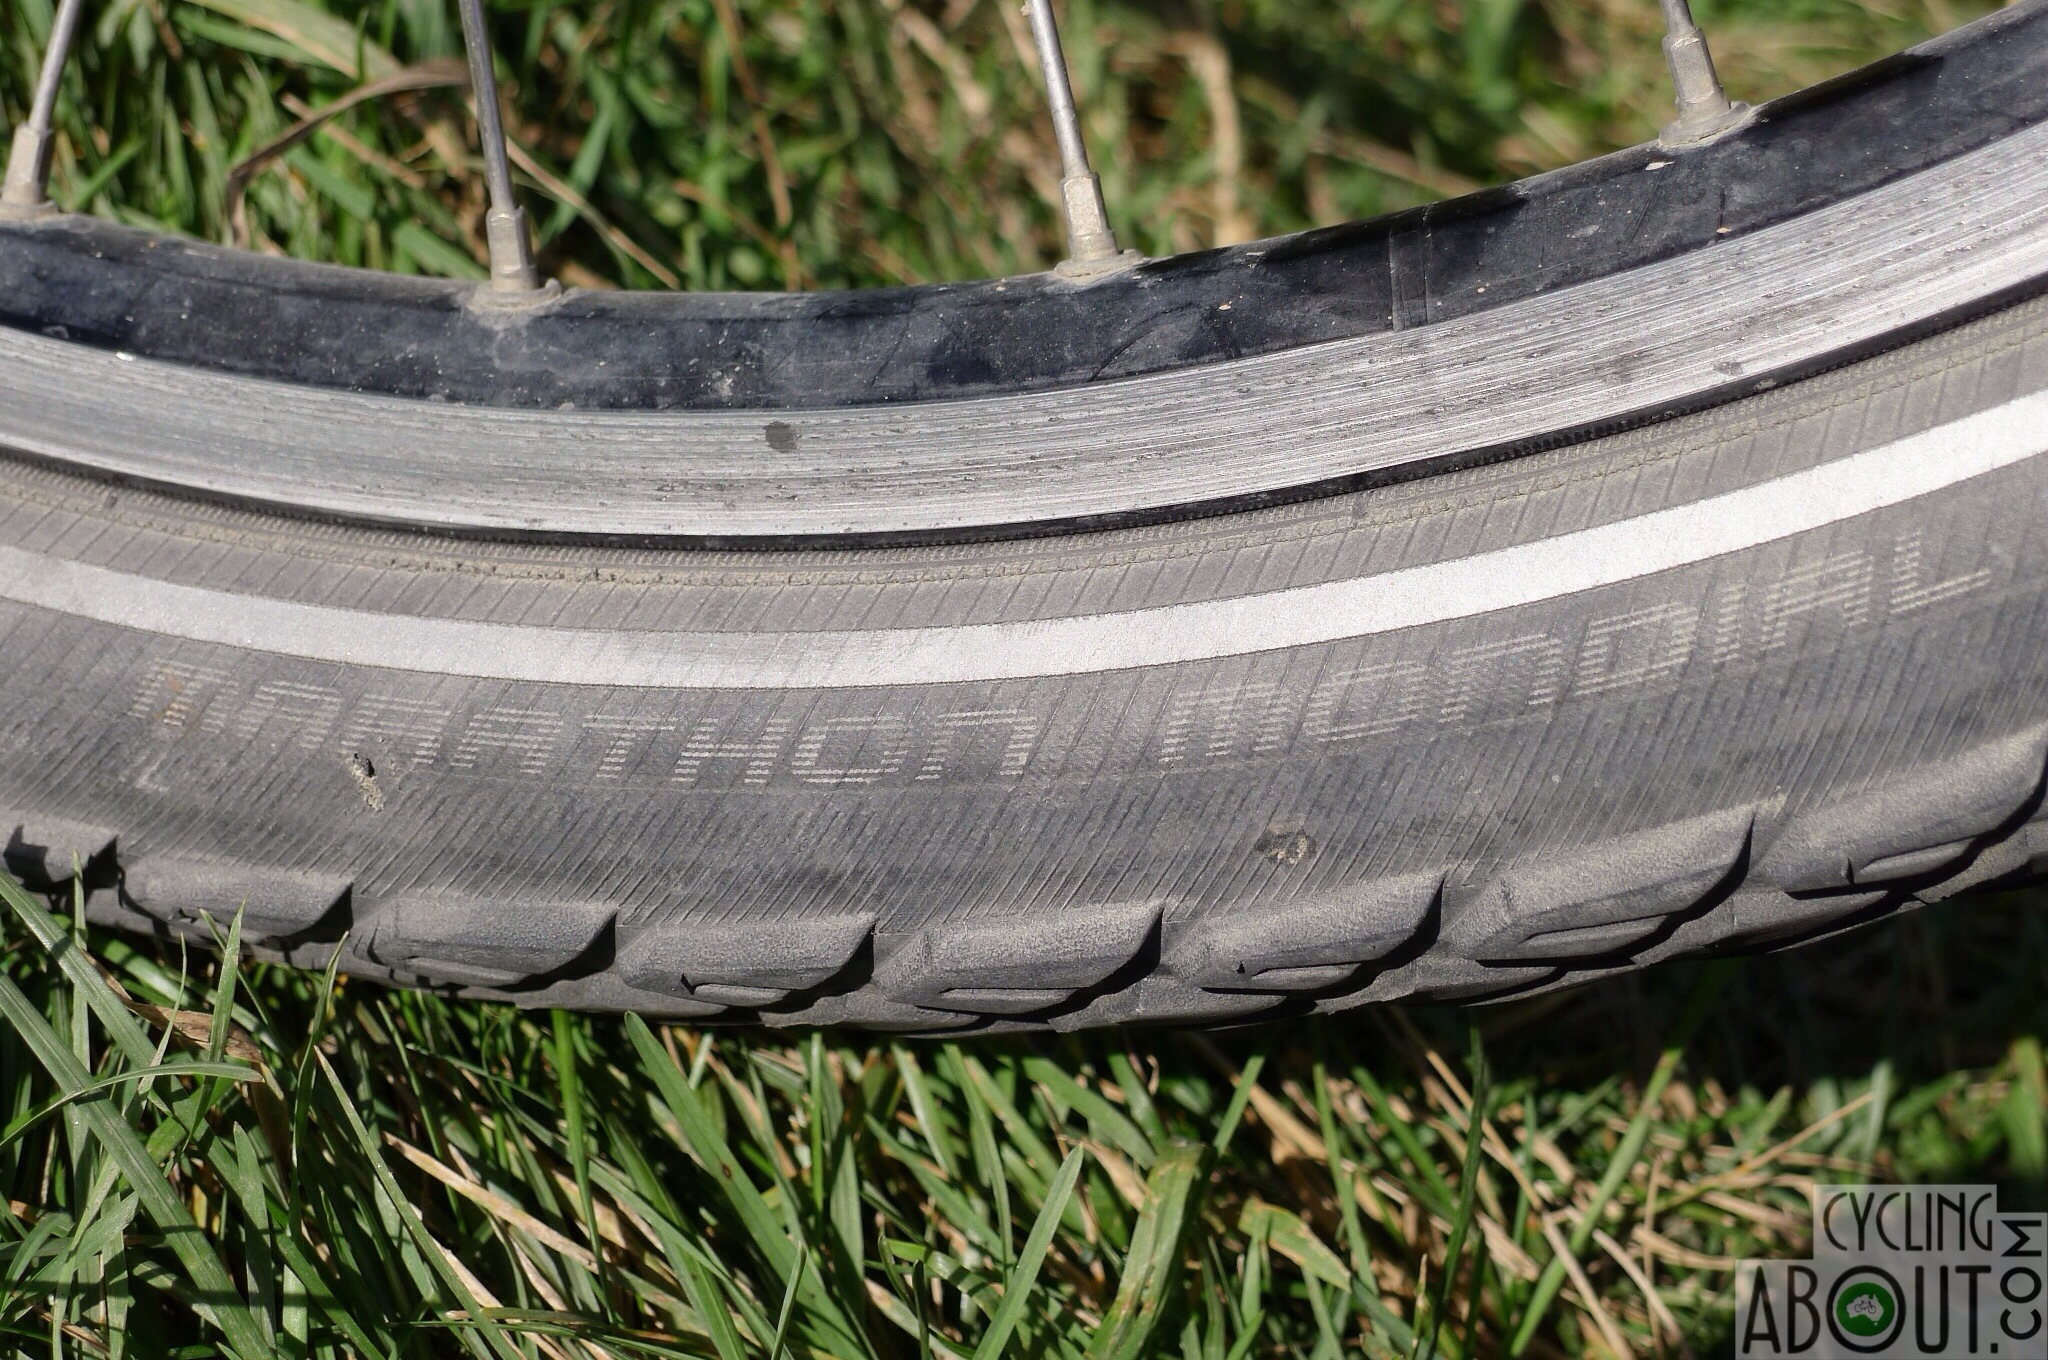 Schwalbe Marathon Mondial Tire 700x40 Wire Bead with Reflective Sidewall and